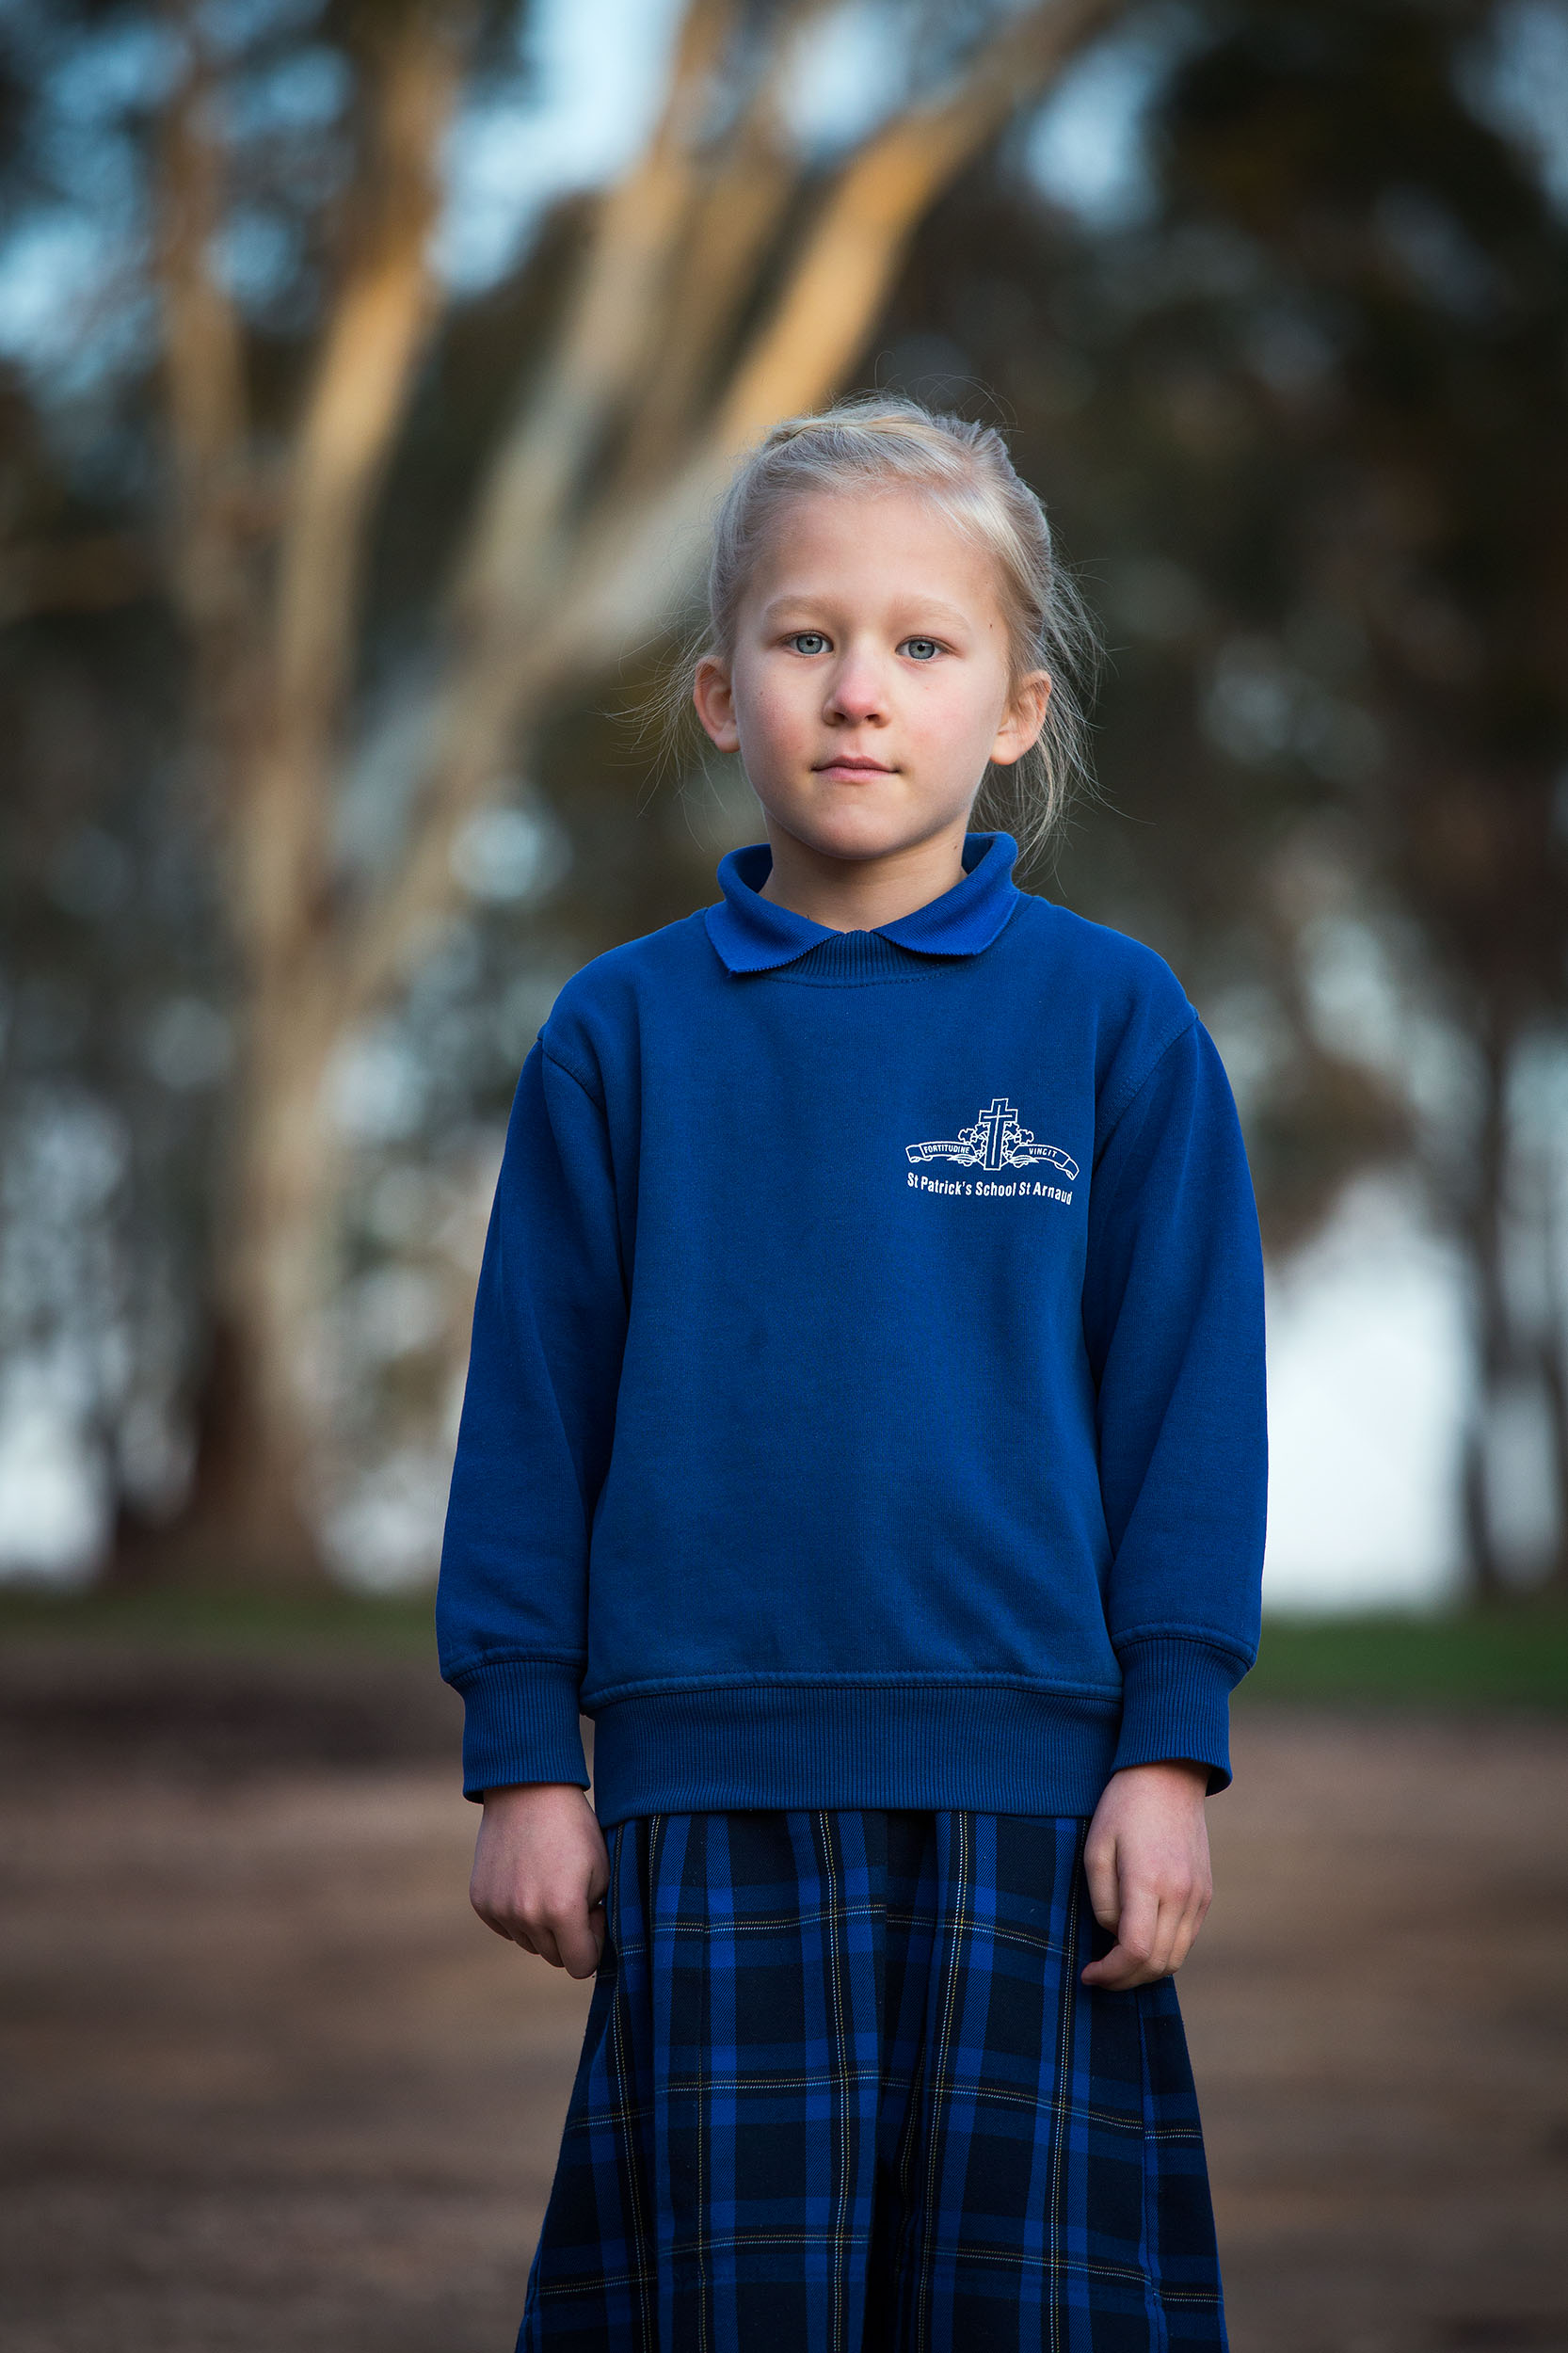 Seven year old Lara, ready to leave for school, St Arnaud, VIC.